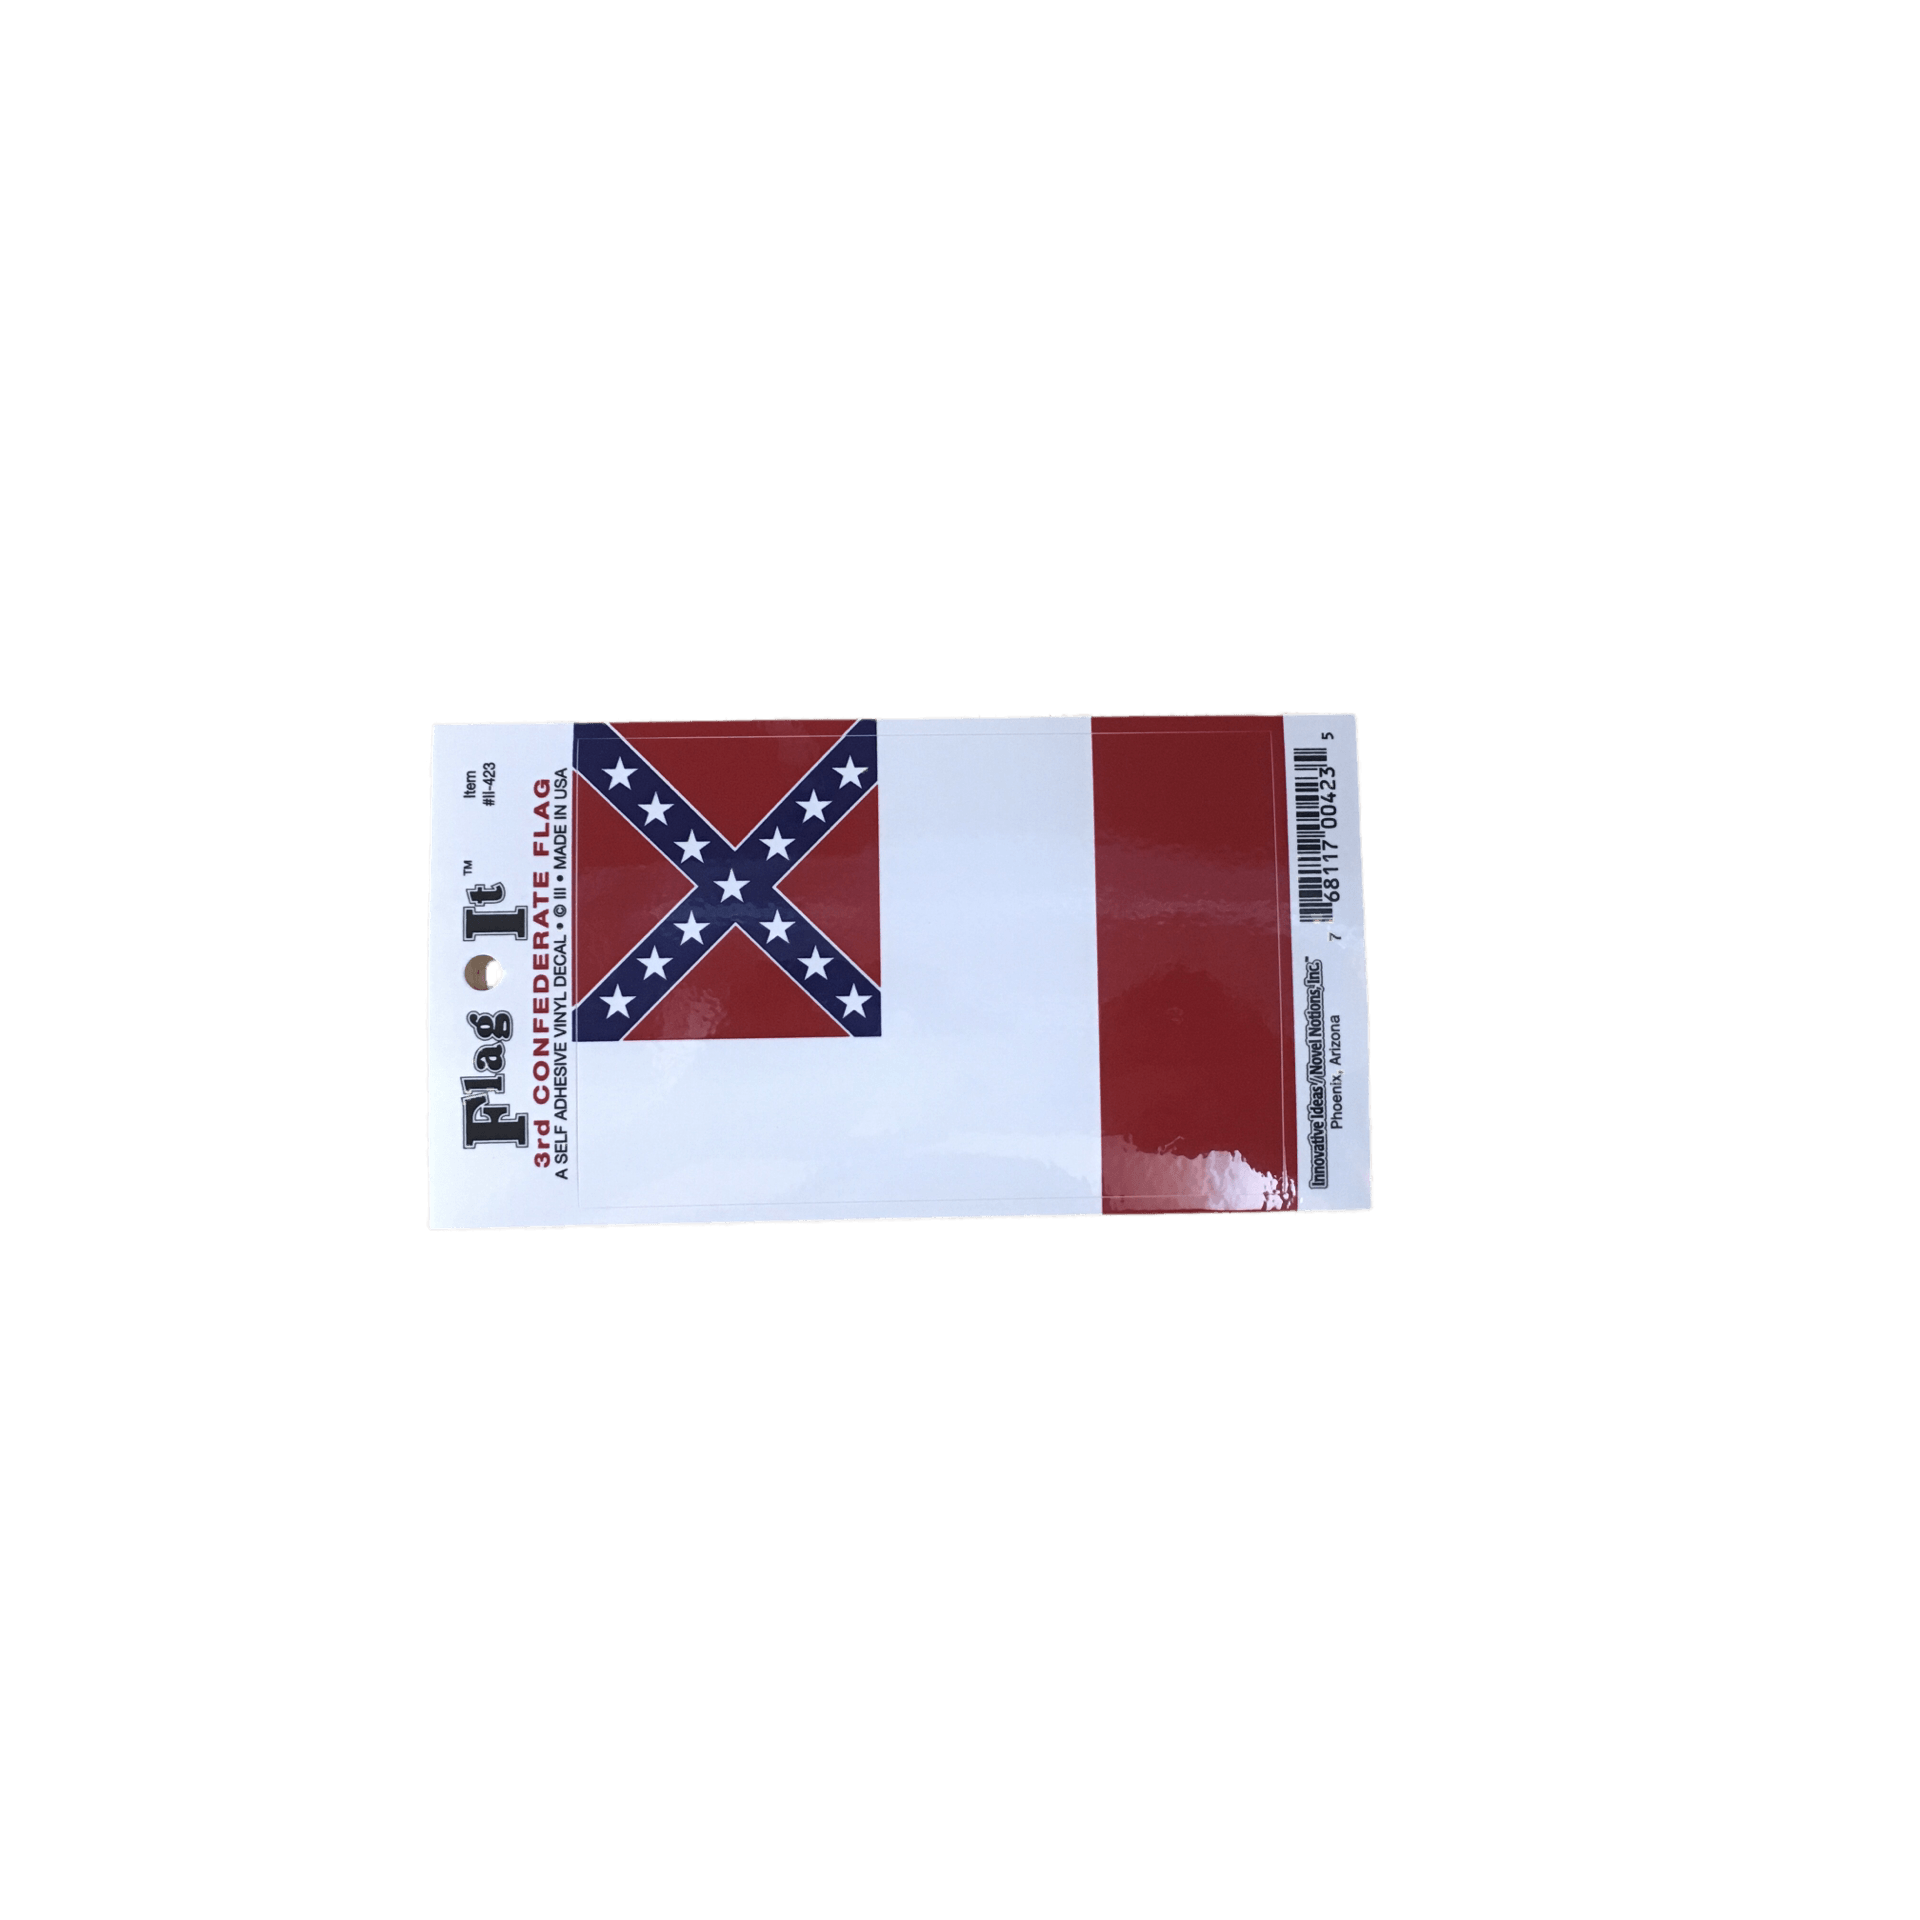 3rd confederate flag sticker smallstickerthe dixie shop 14558139 pngv1536520559 american flag clipart clipart kid american by birth southern by the grace